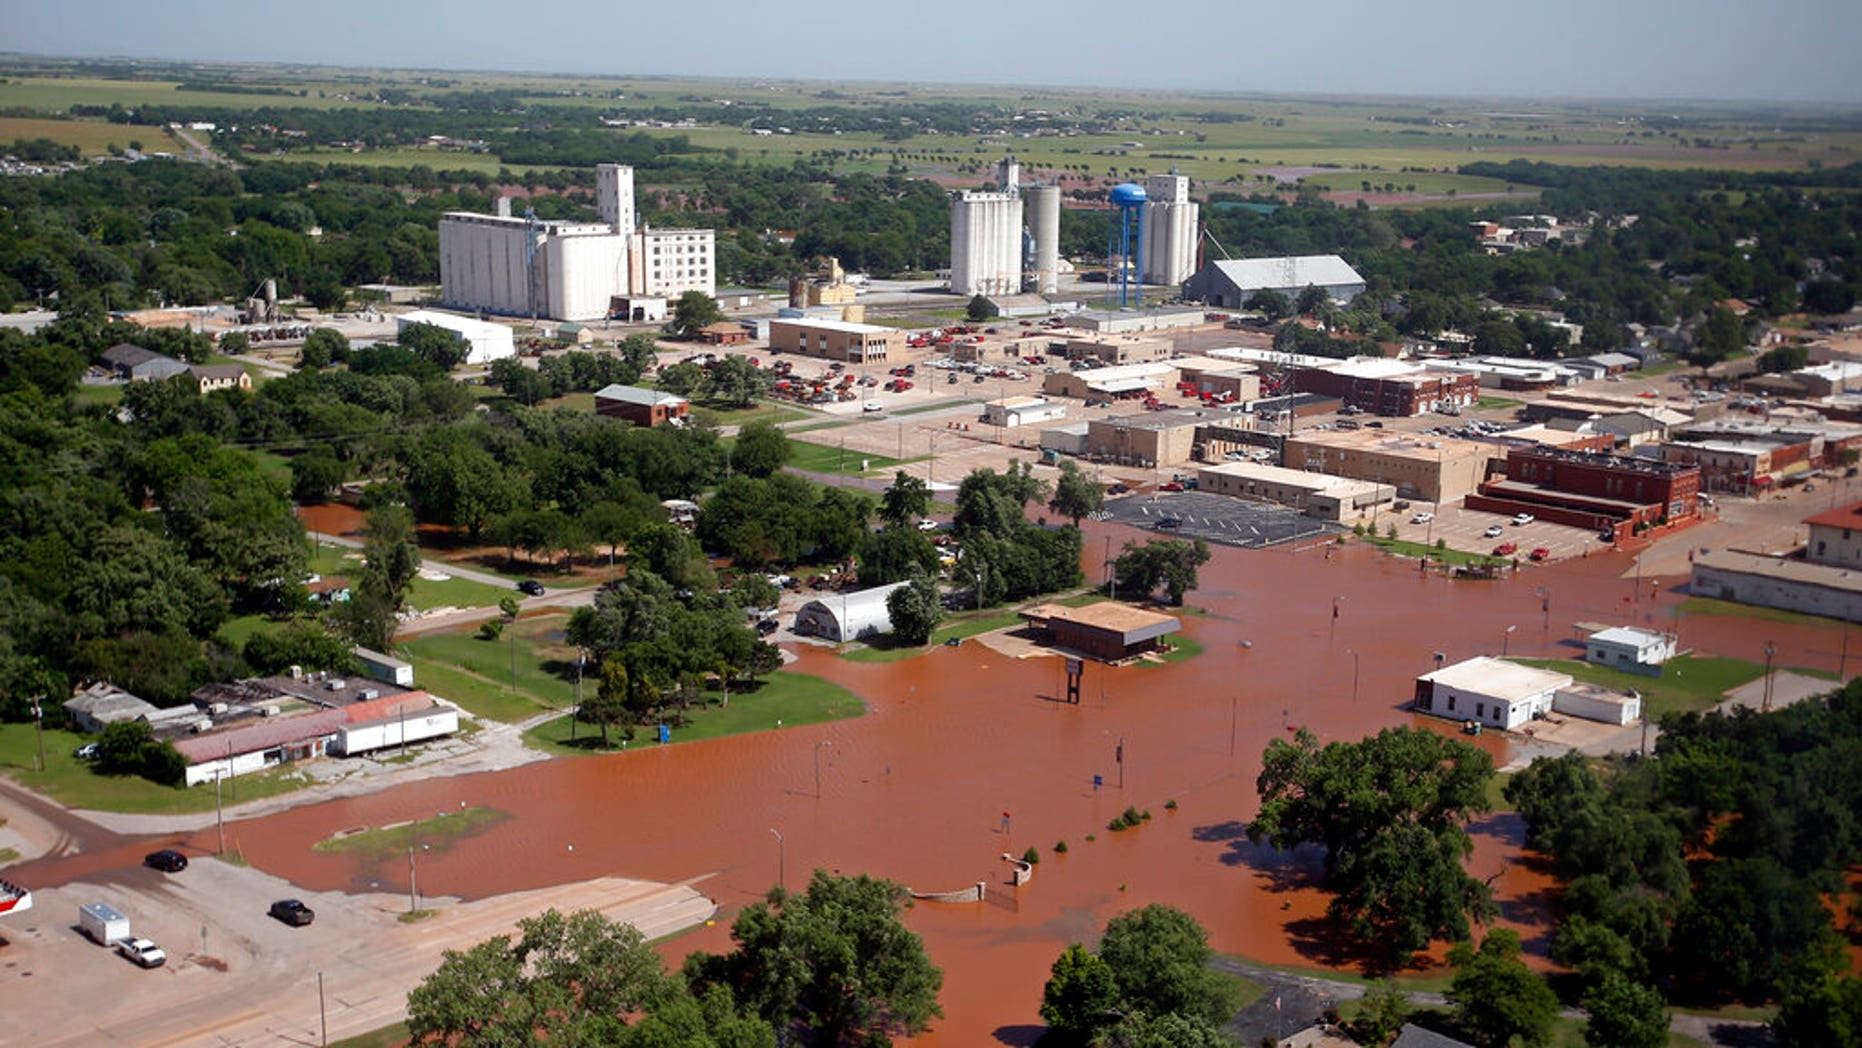 Flooding in Kingfisher, Okla. is pictured Tuesday, May 21, 2019. Flooding following heavy rains was an issue across the state.